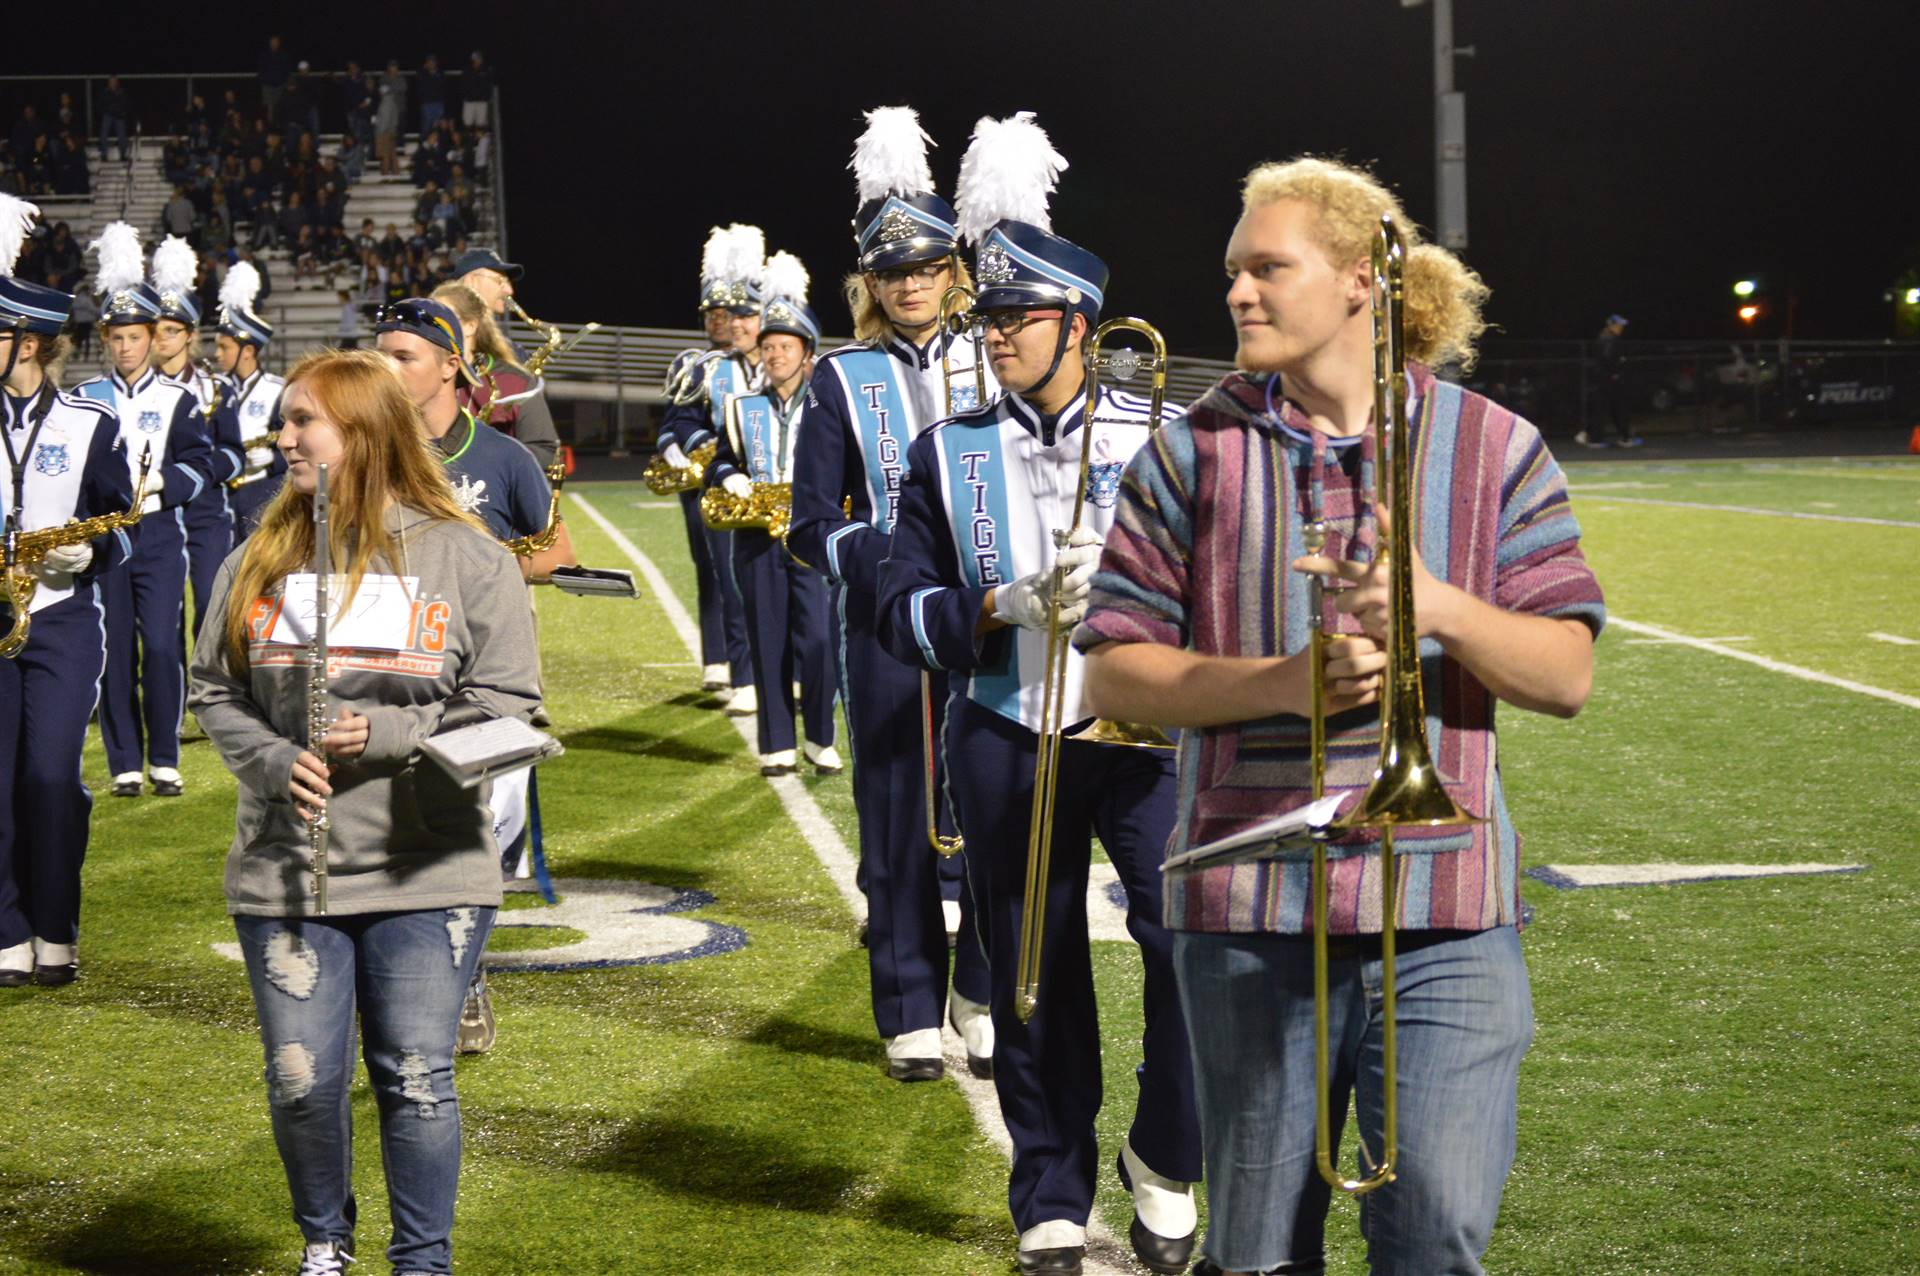 Alumni band and current band members on the field